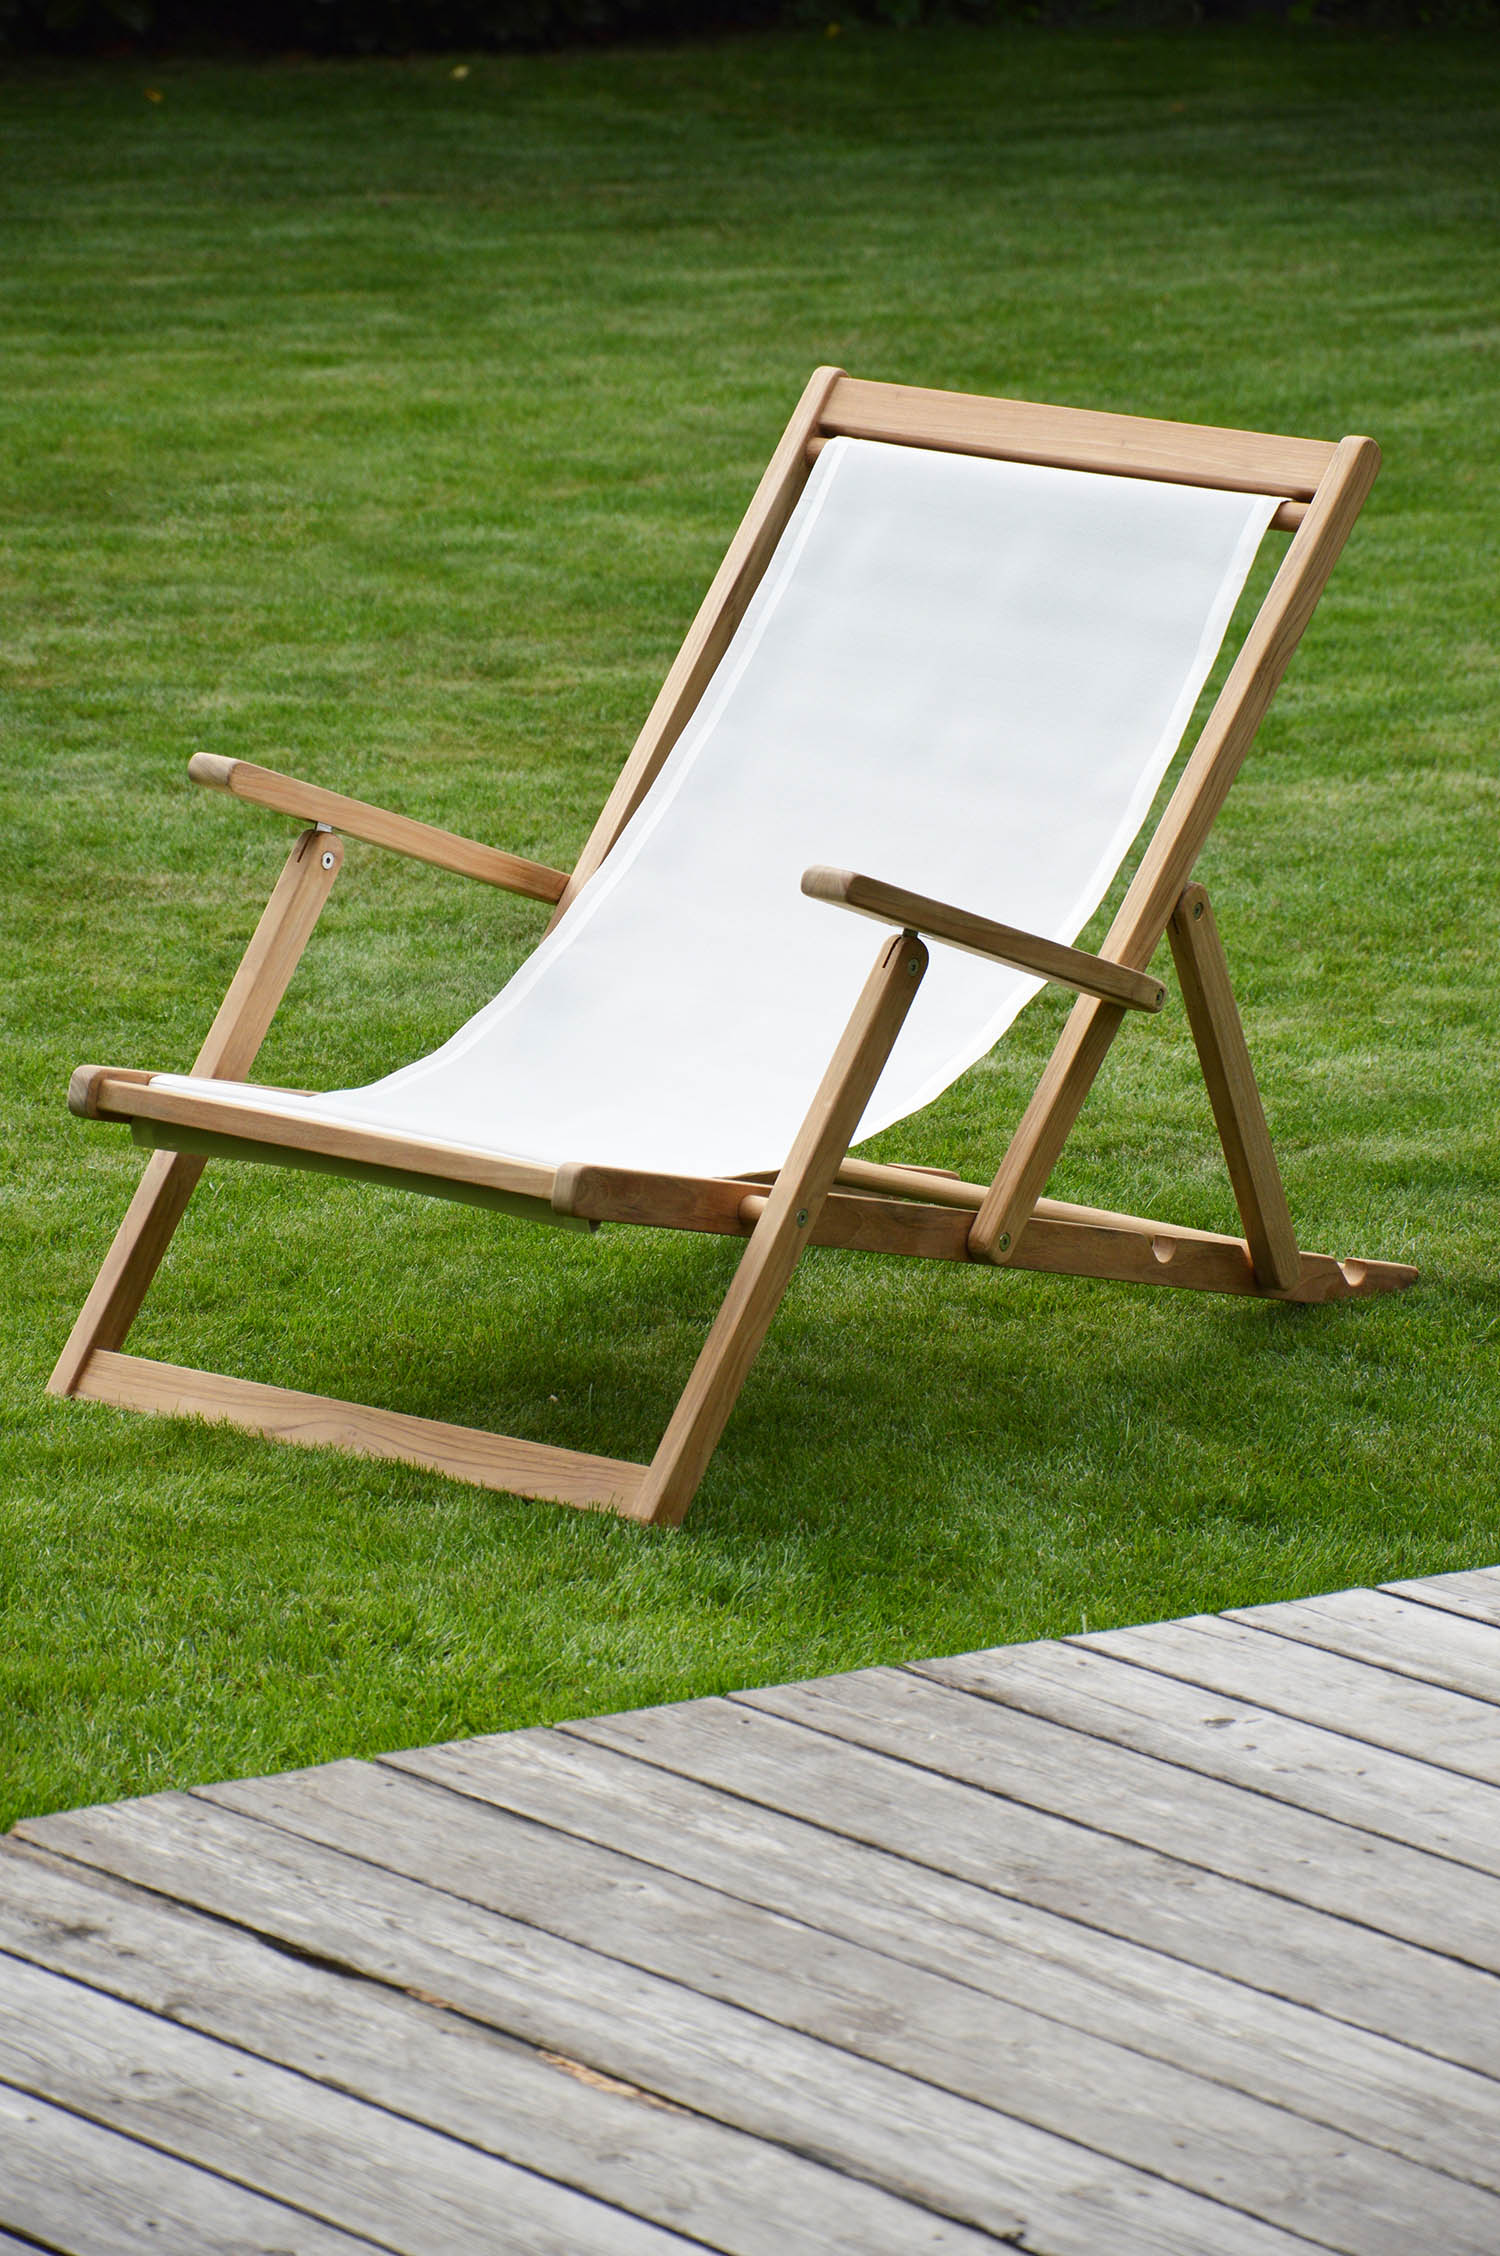 jan kurtz antibes liegestuhl deckchair gartenm bel. Black Bedroom Furniture Sets. Home Design Ideas